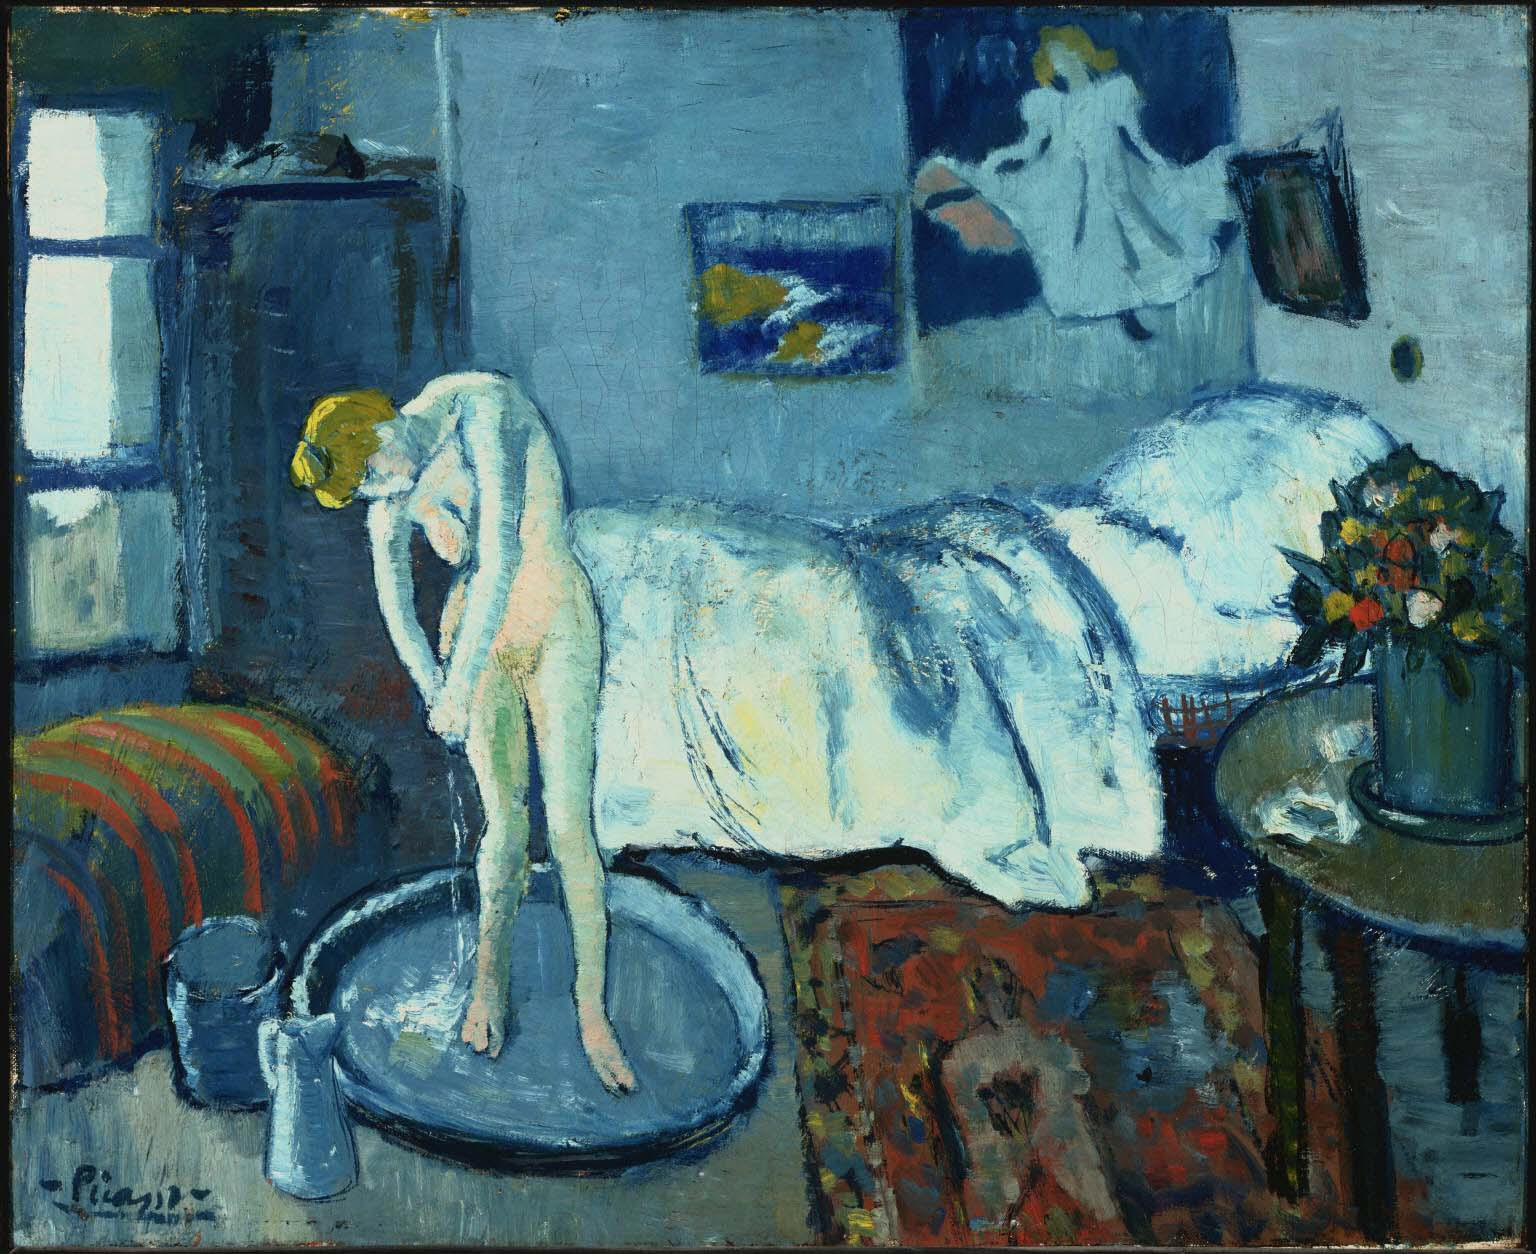 The Blue Room by Pablo Picasso